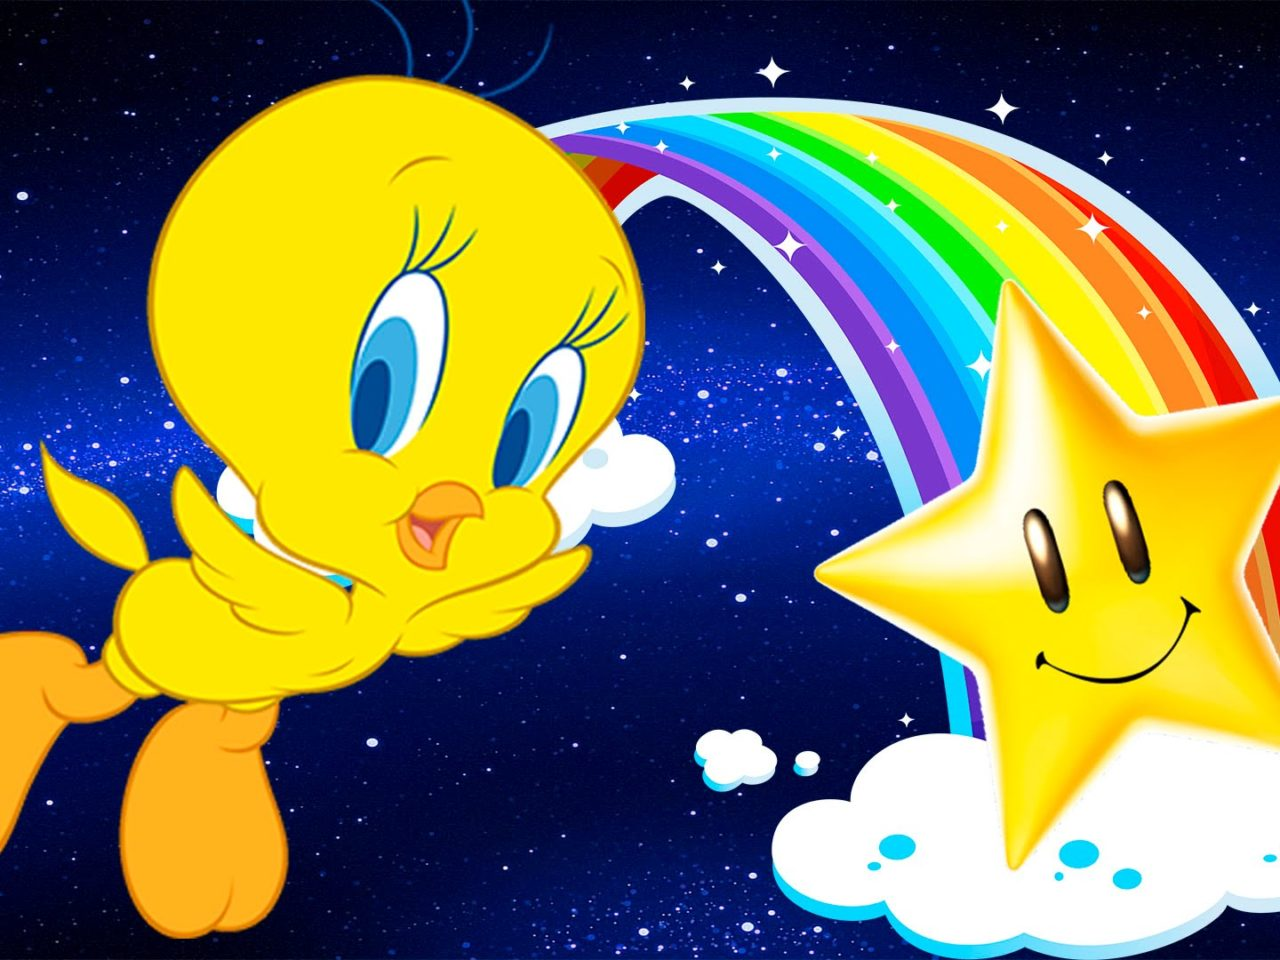 How To Use A Gif As A Wallpaper Iphone Cartoon Looney Tunes Tweety Bird Movie Star Graphic